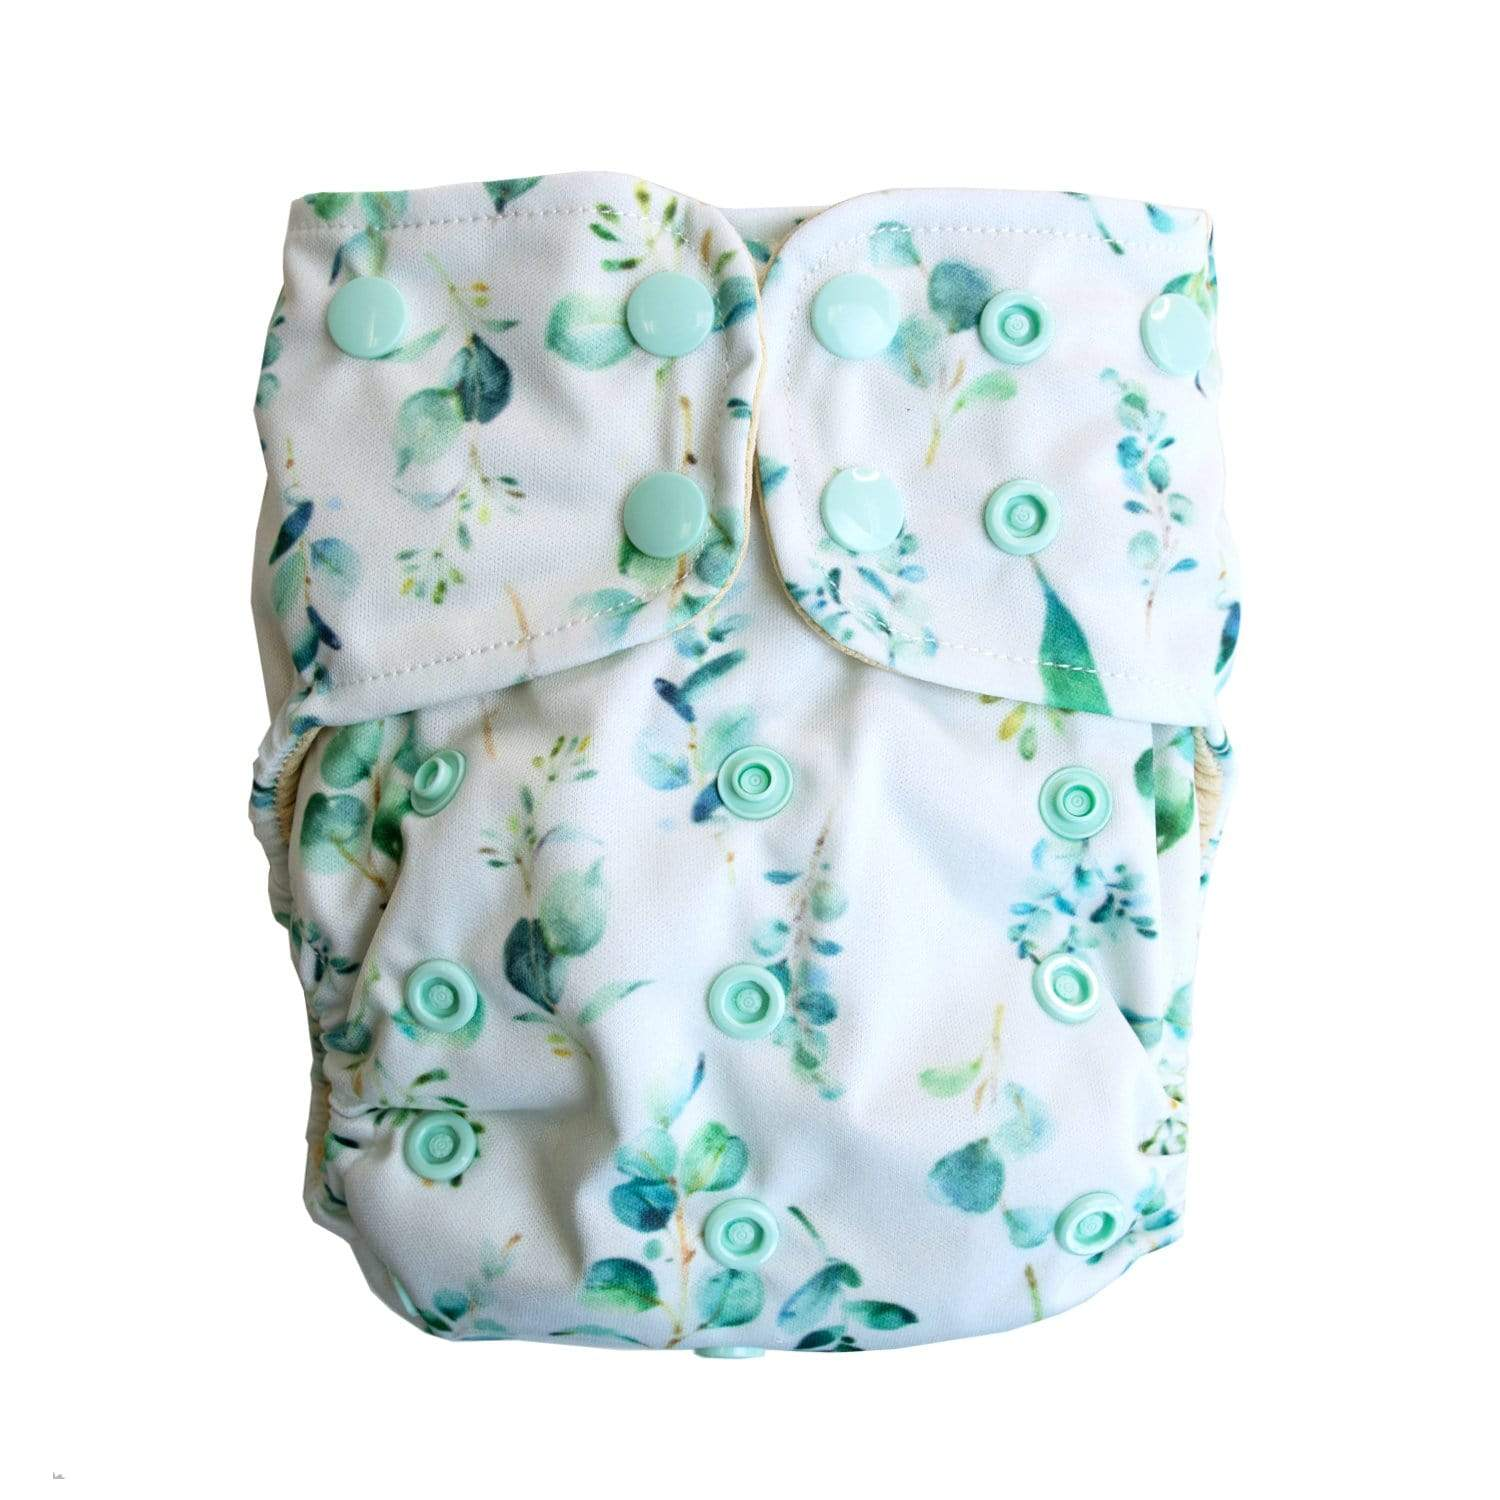 Lighthouse Kid's Company Supreme All In One Diaper - Eucalyptus